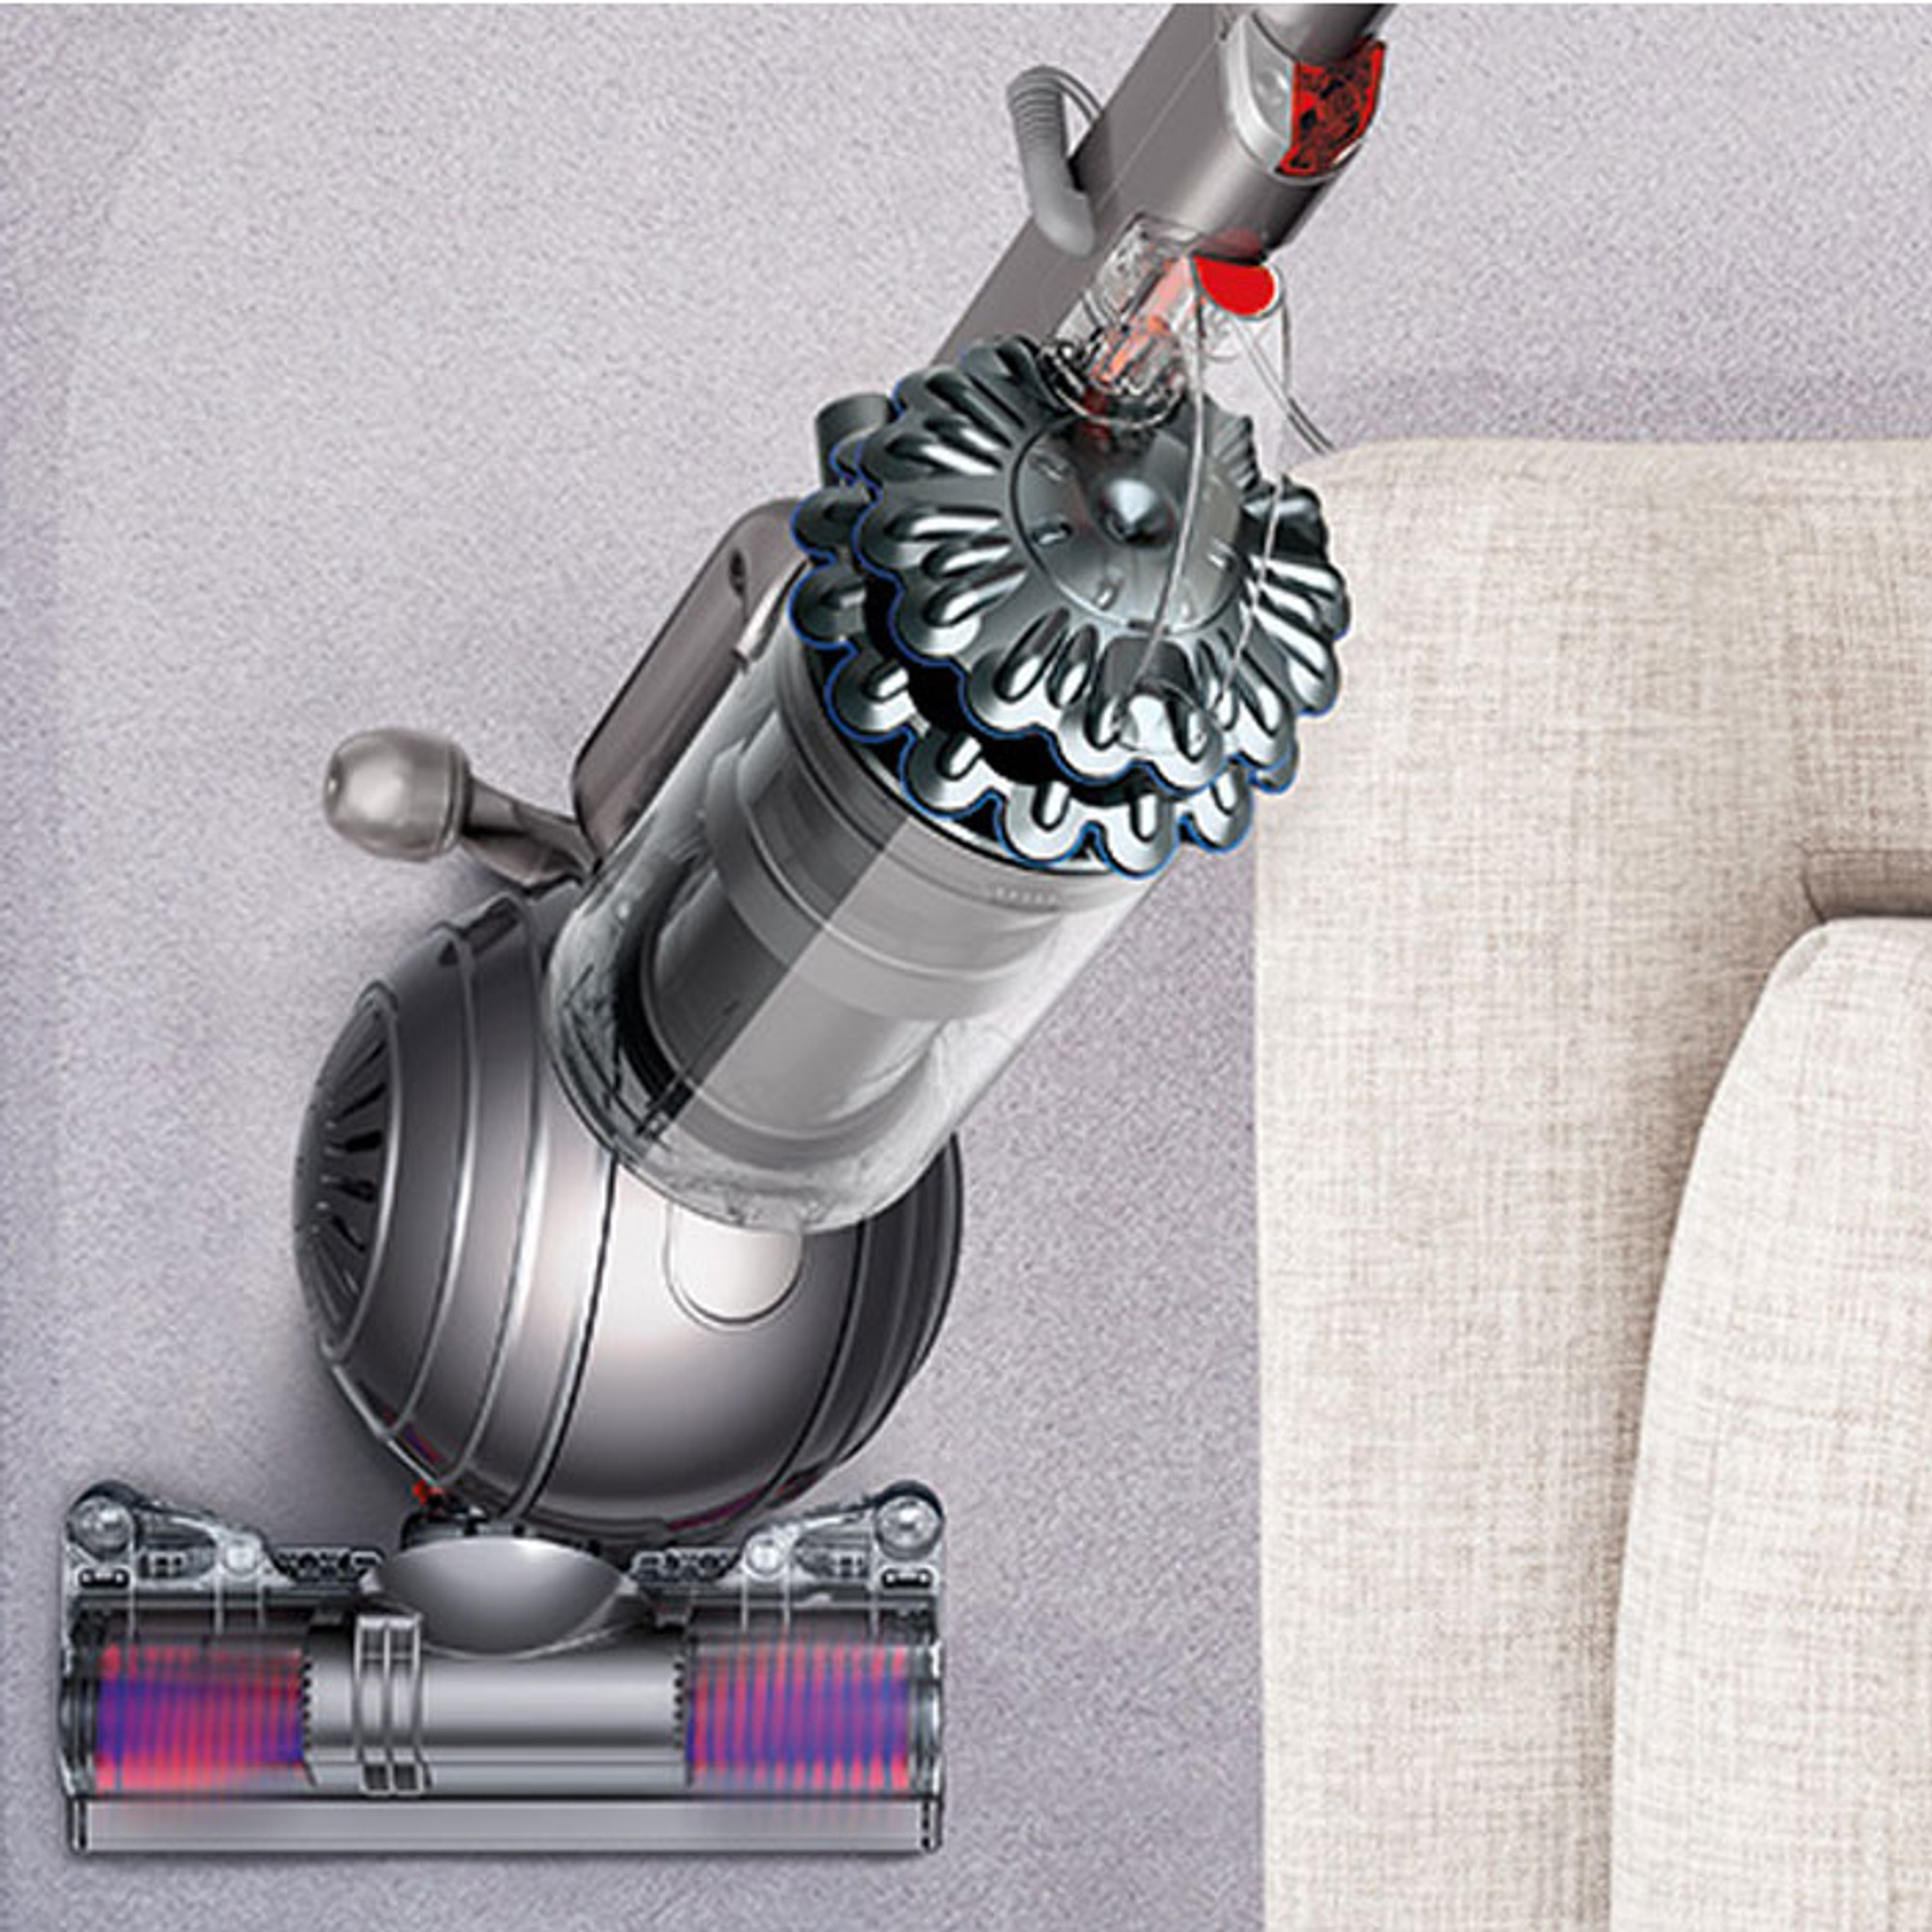 Buy Dyson Dc77 Cinetic Multi Floor Upright Vacuum Cleaner